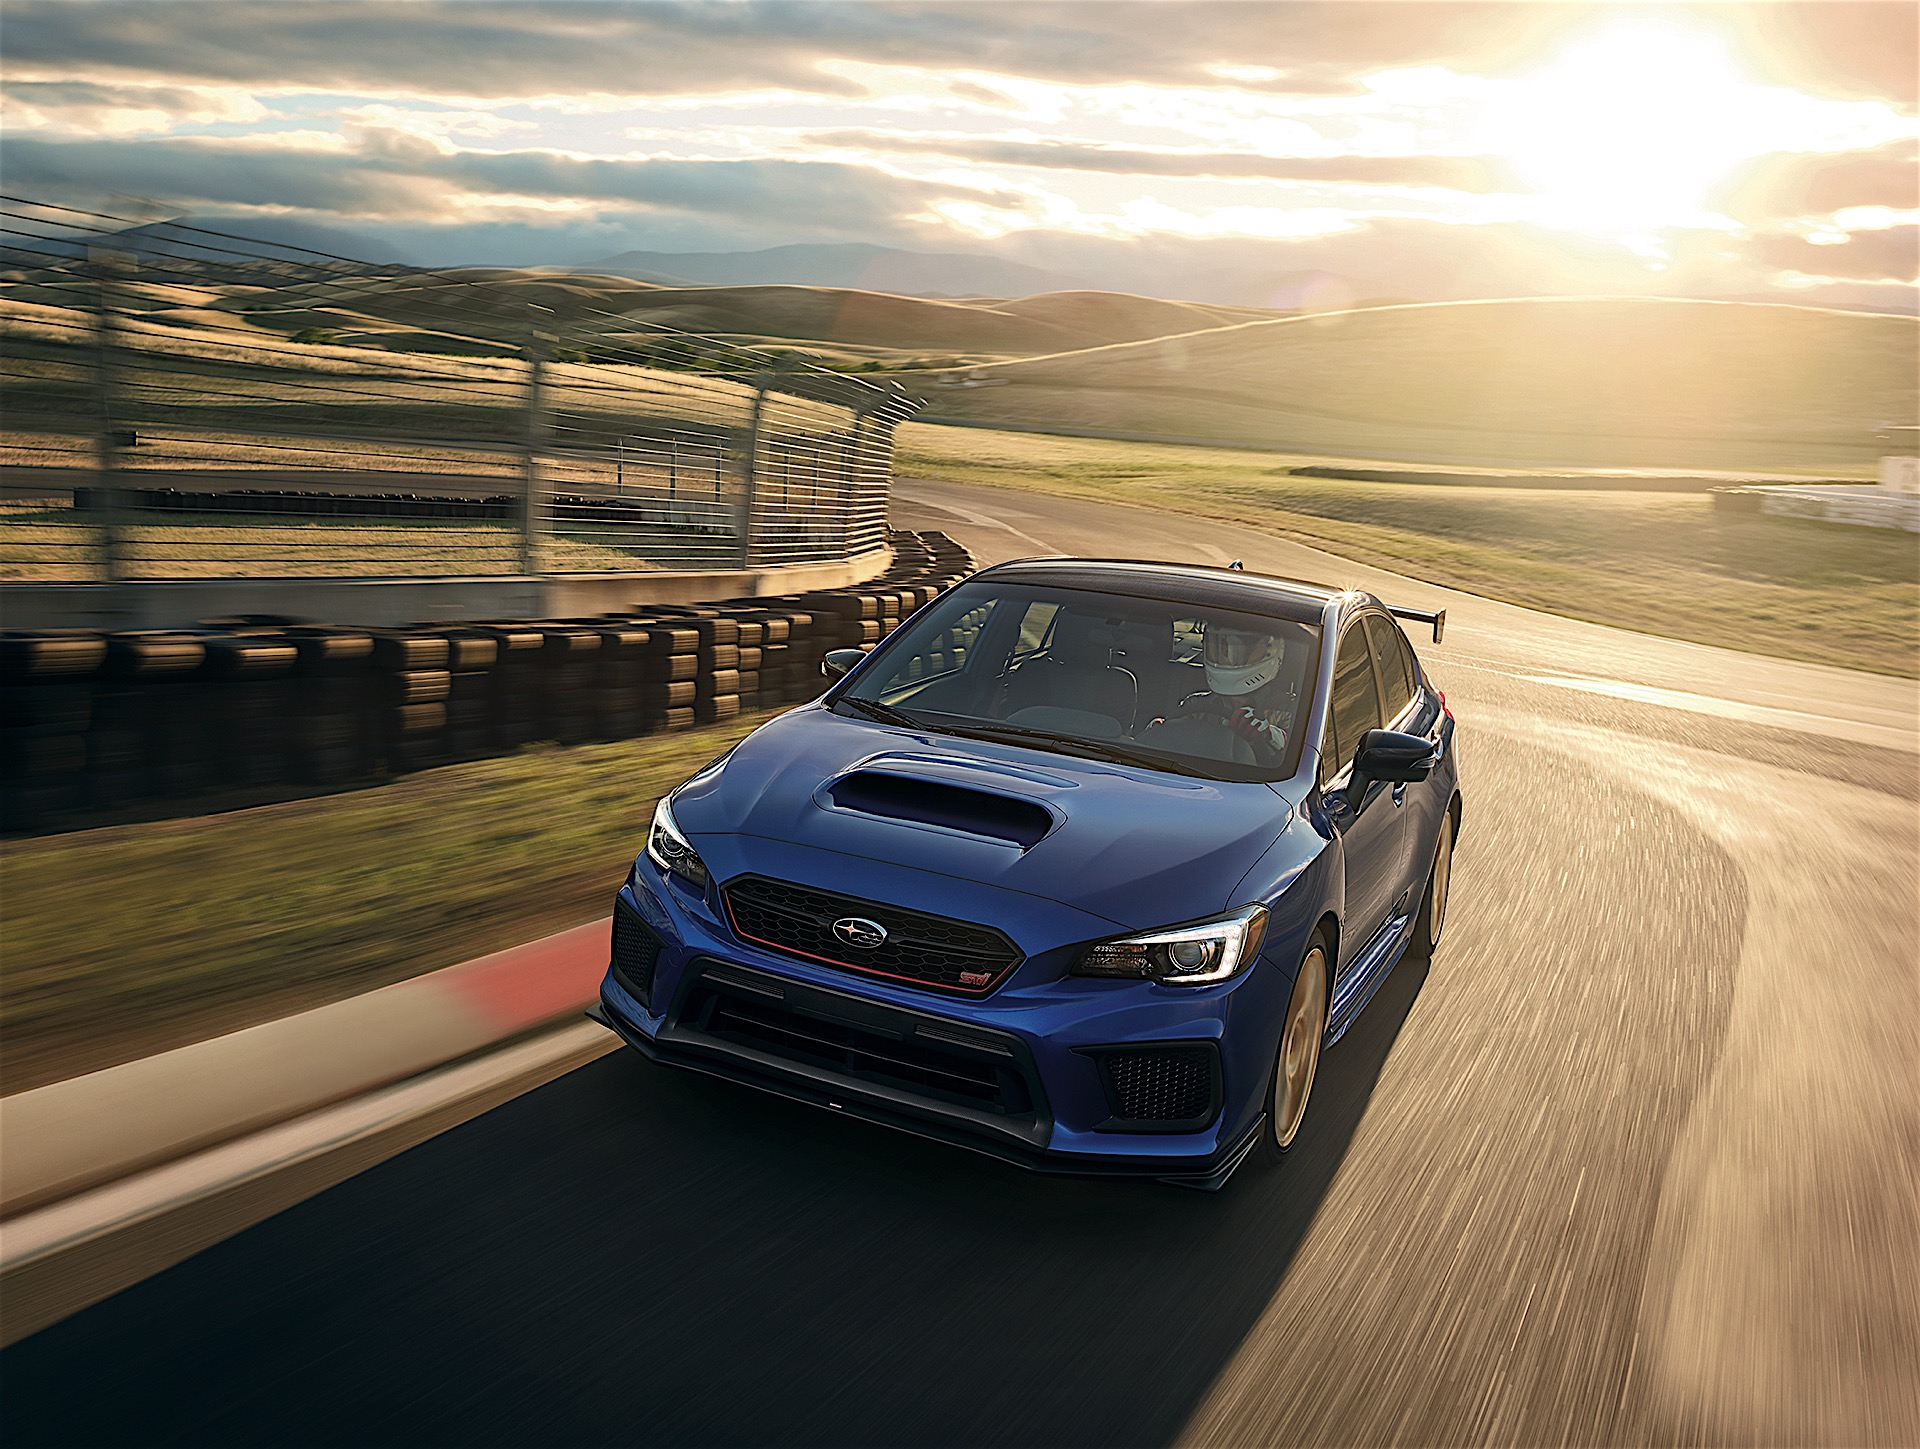 Reasons Why Fans Won't be Happy With the New BRZ STI